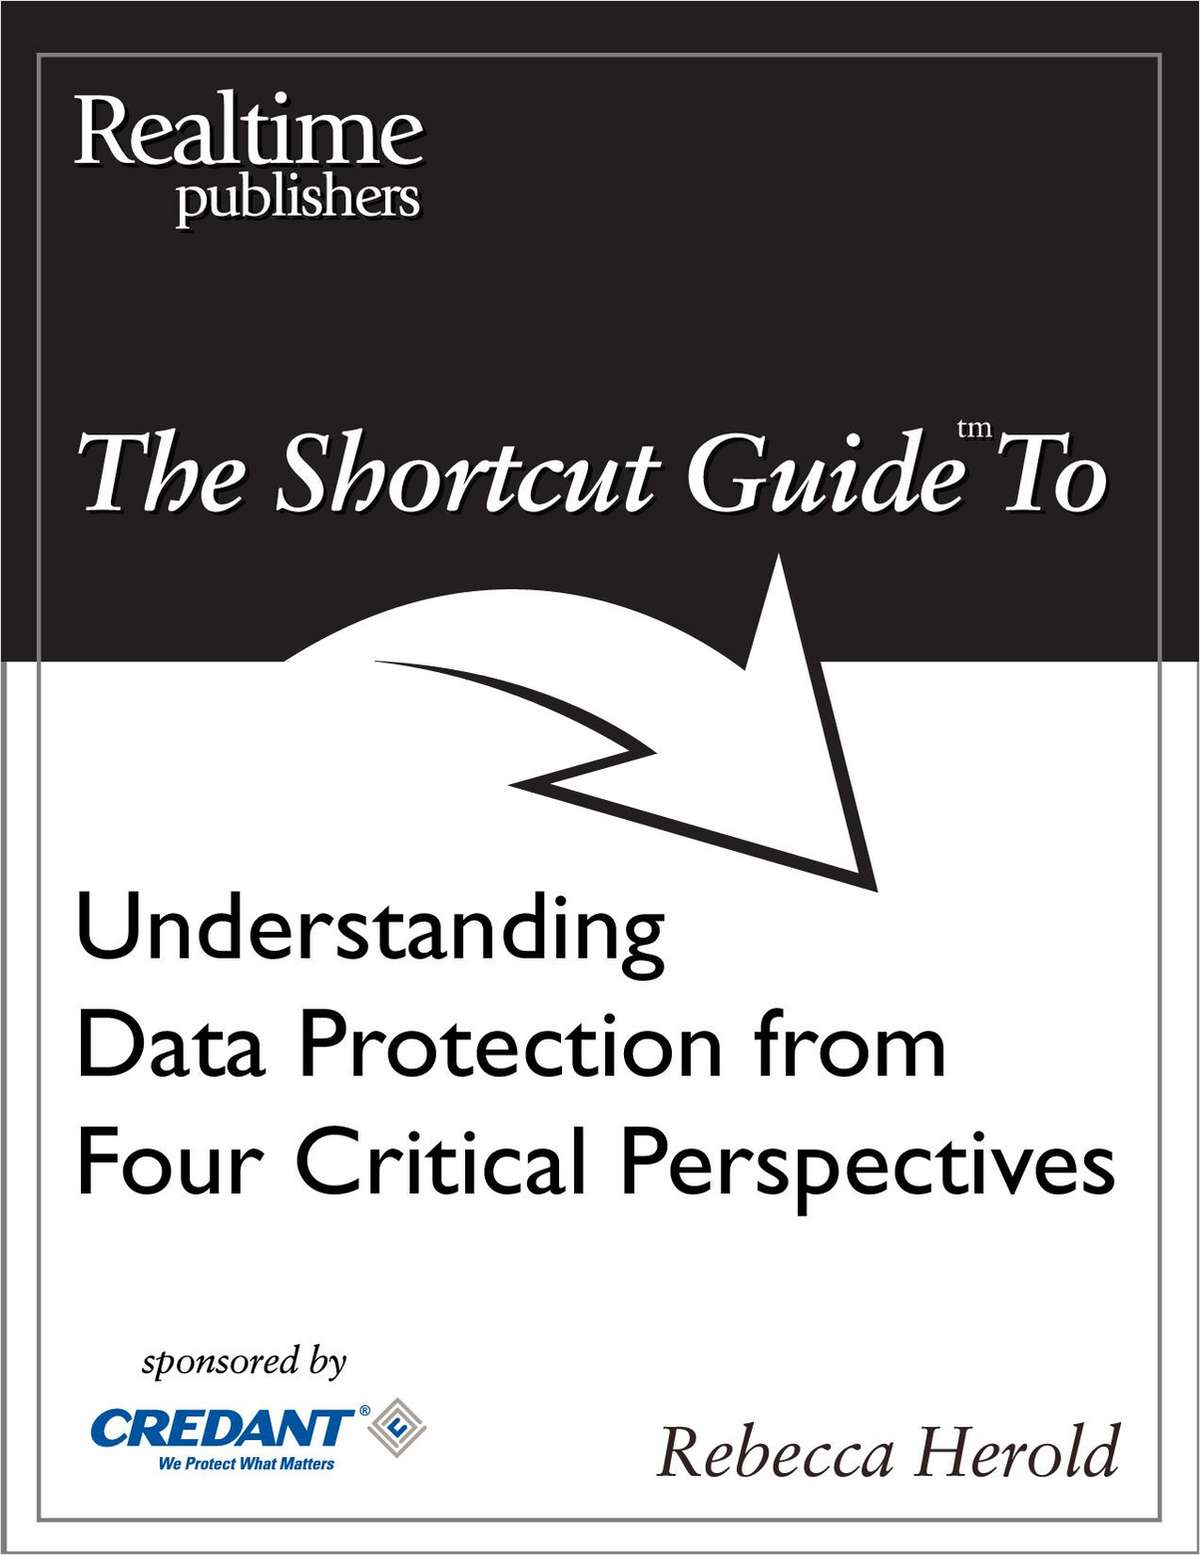 The Shortcut Guide to Understanding Data Protection from Four Critical Perspectives